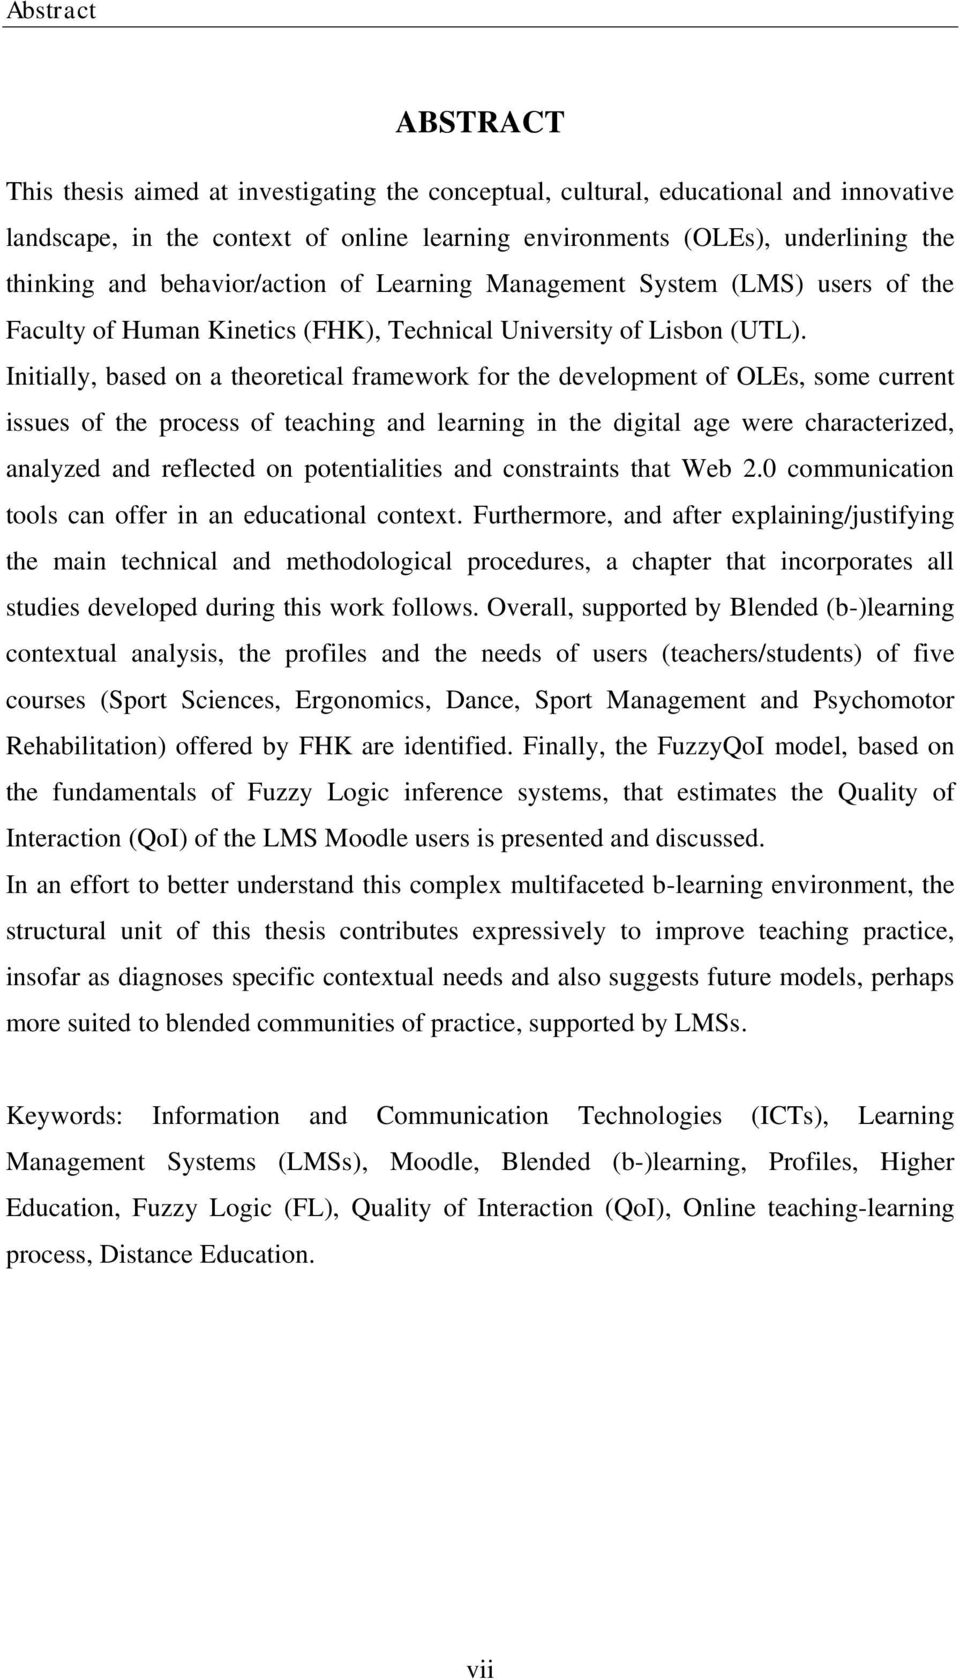 Initially, based on a theoretical framework for the development of OLEs, some current issues of the process of teaching and learning in the digital age were characterized, analyzed and reflected on